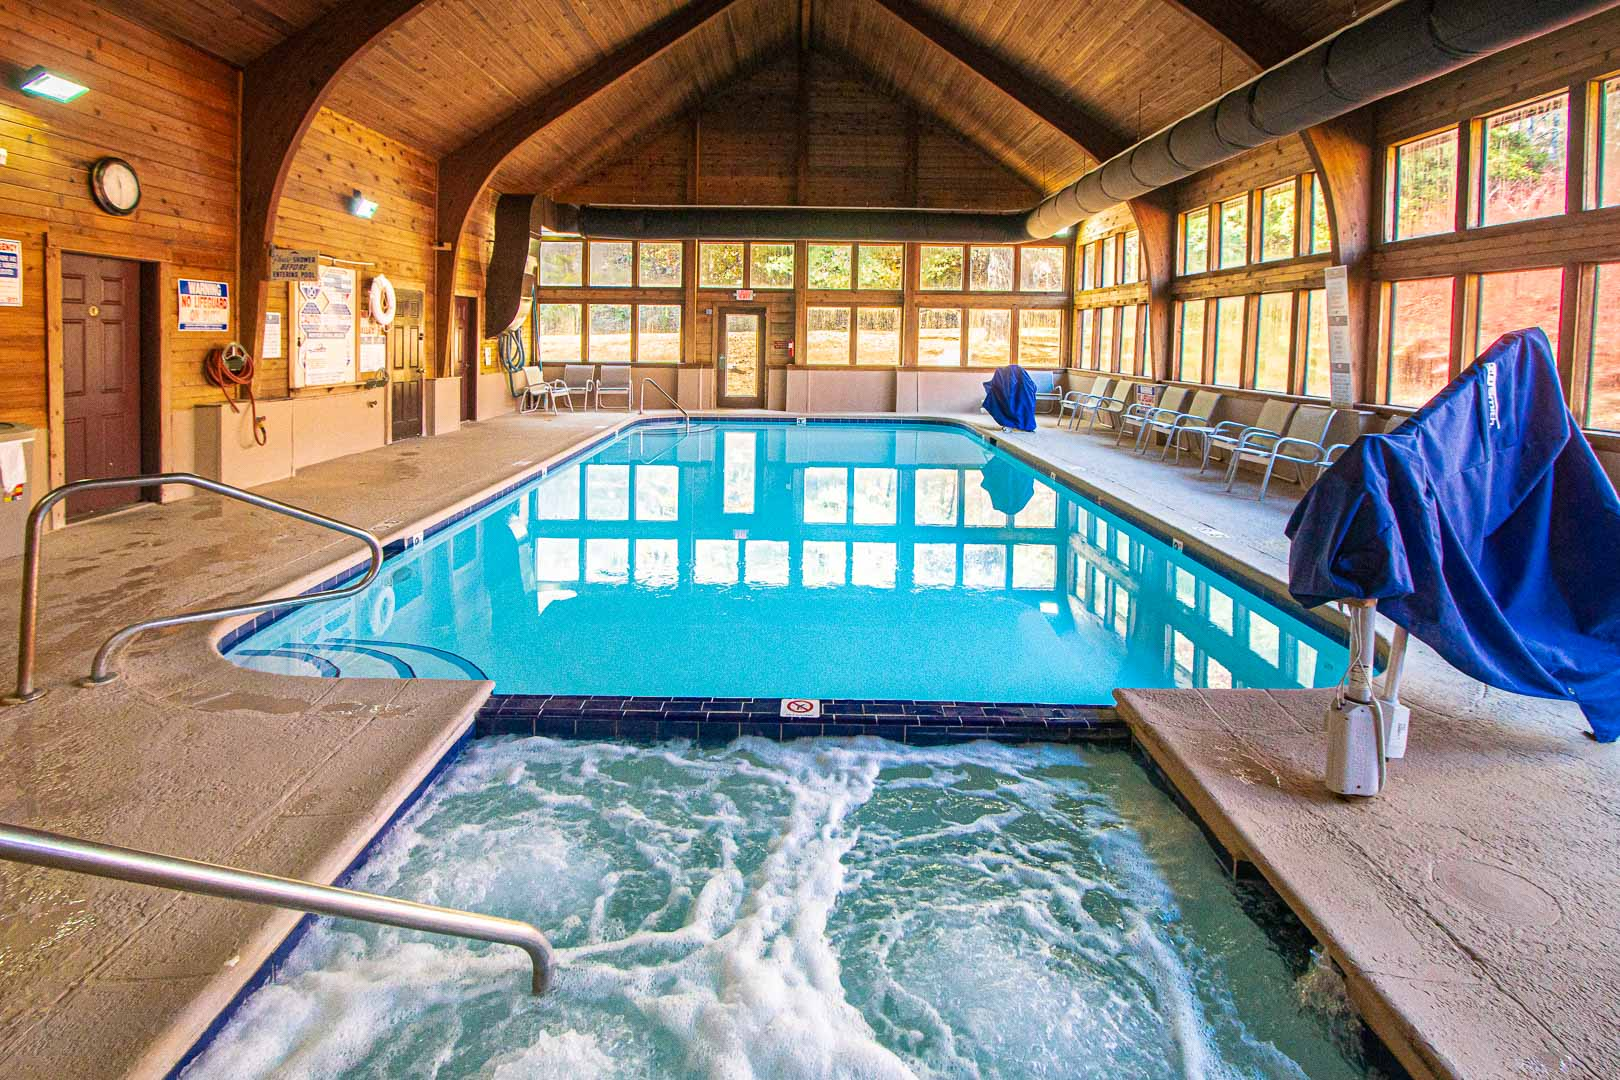 A quaint indoor swimming pool and Jacuzzi tub at VRI's Fox Run Resort in North Carolina.